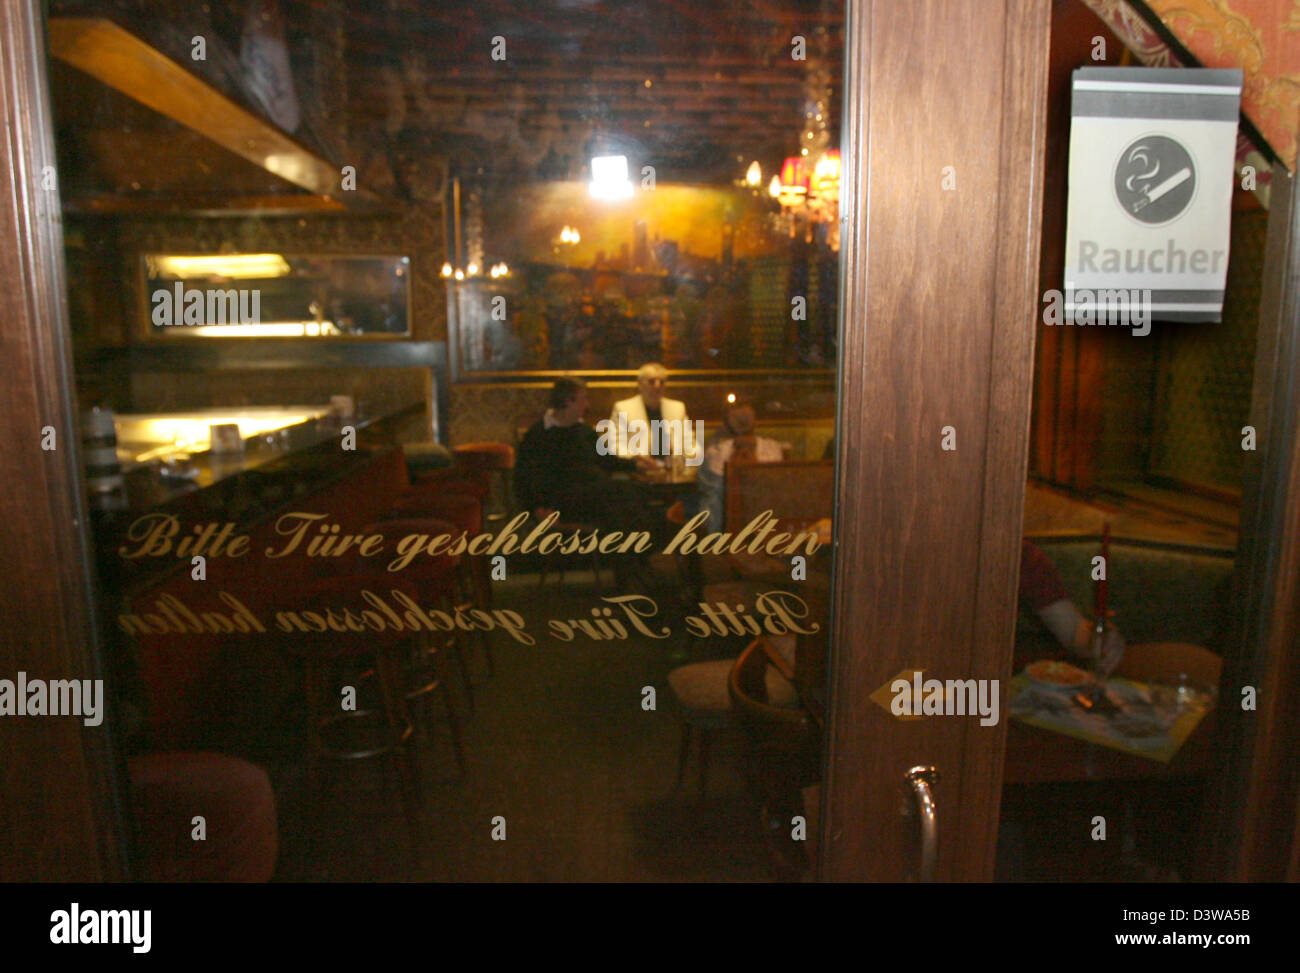 The smokers lounge of 'Cafe Weiss' seperates the smokers from the non-smokers as required by law in Stuttgart, - Stock Image